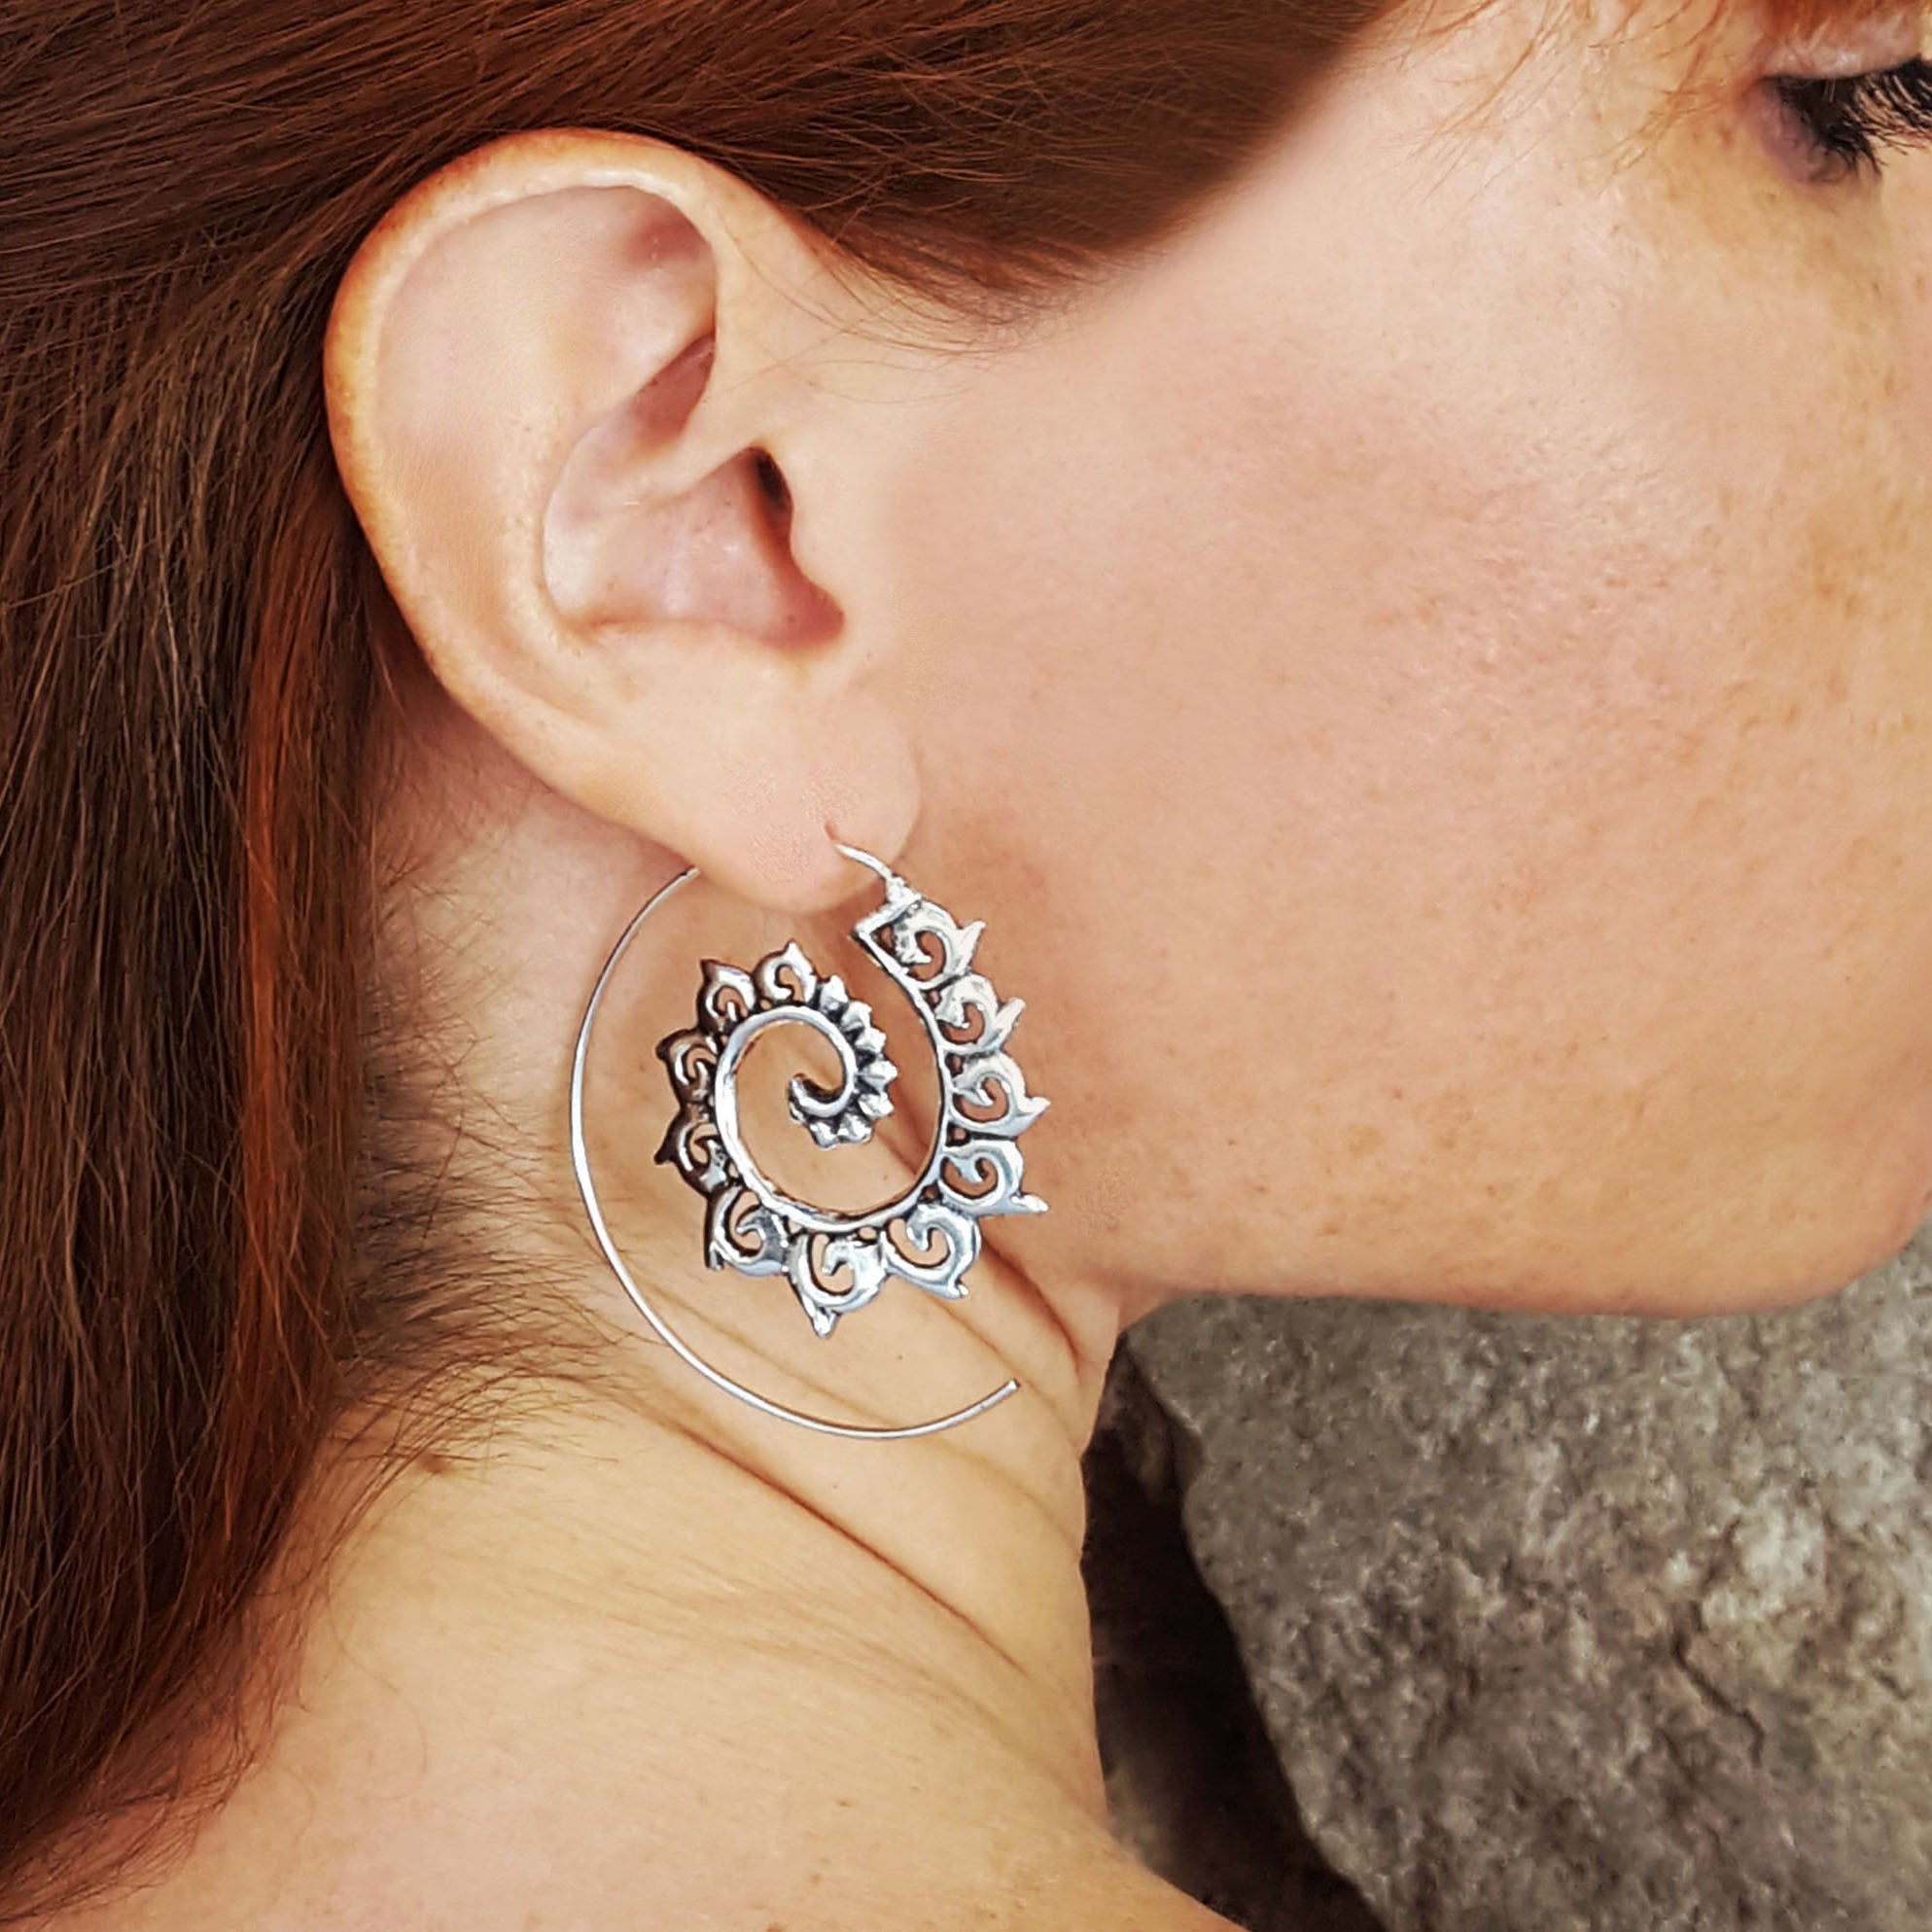 Spiral gysy earrings